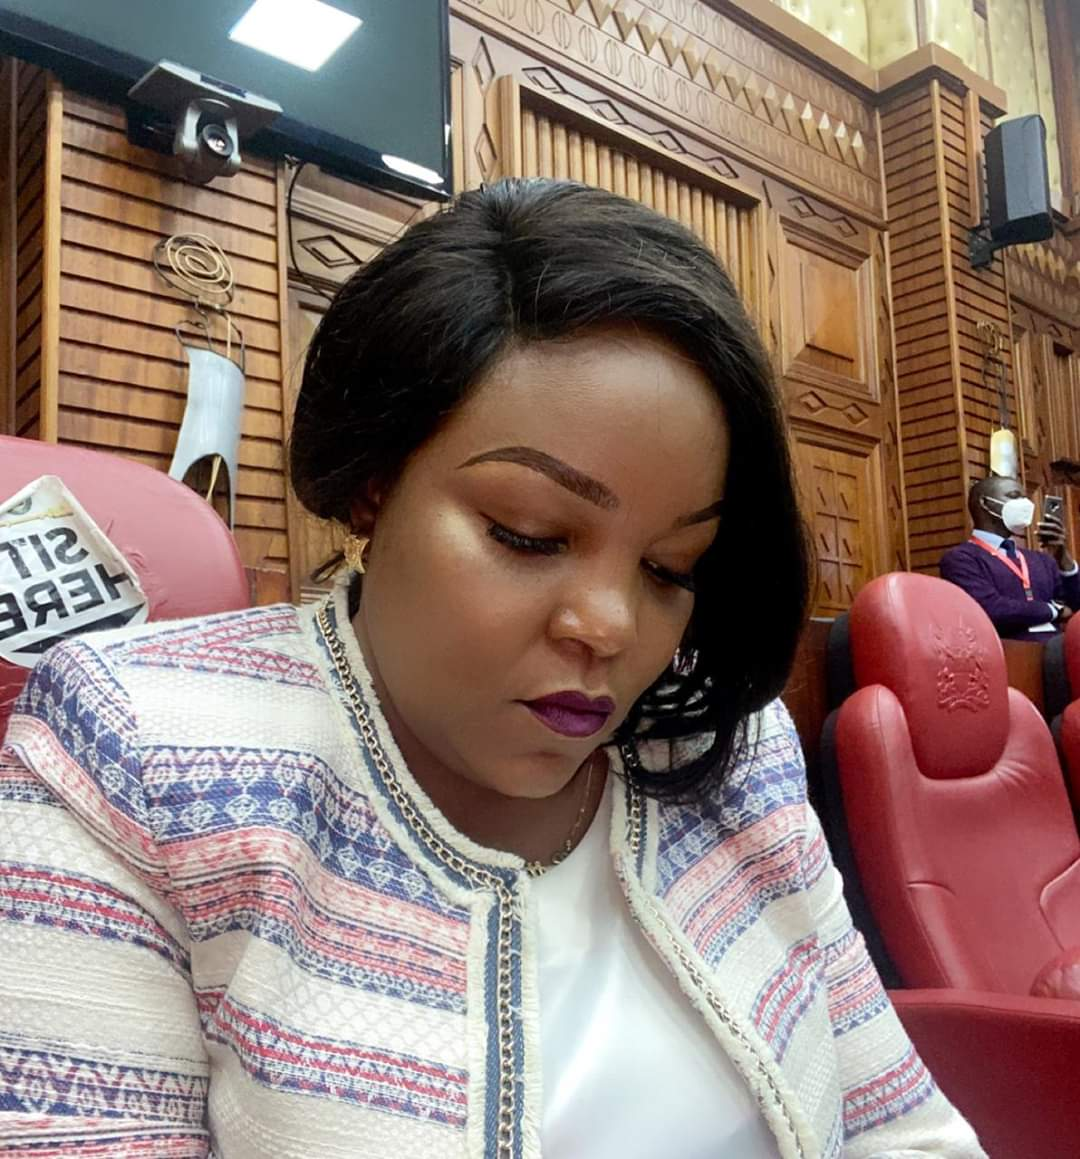 Happening now . Discharging my committe duties. The nominee for the position of Auditor-General Ms. Nancy Janet Gathungu appears before Parliaments Committee on Finance & National Planning for vetting .